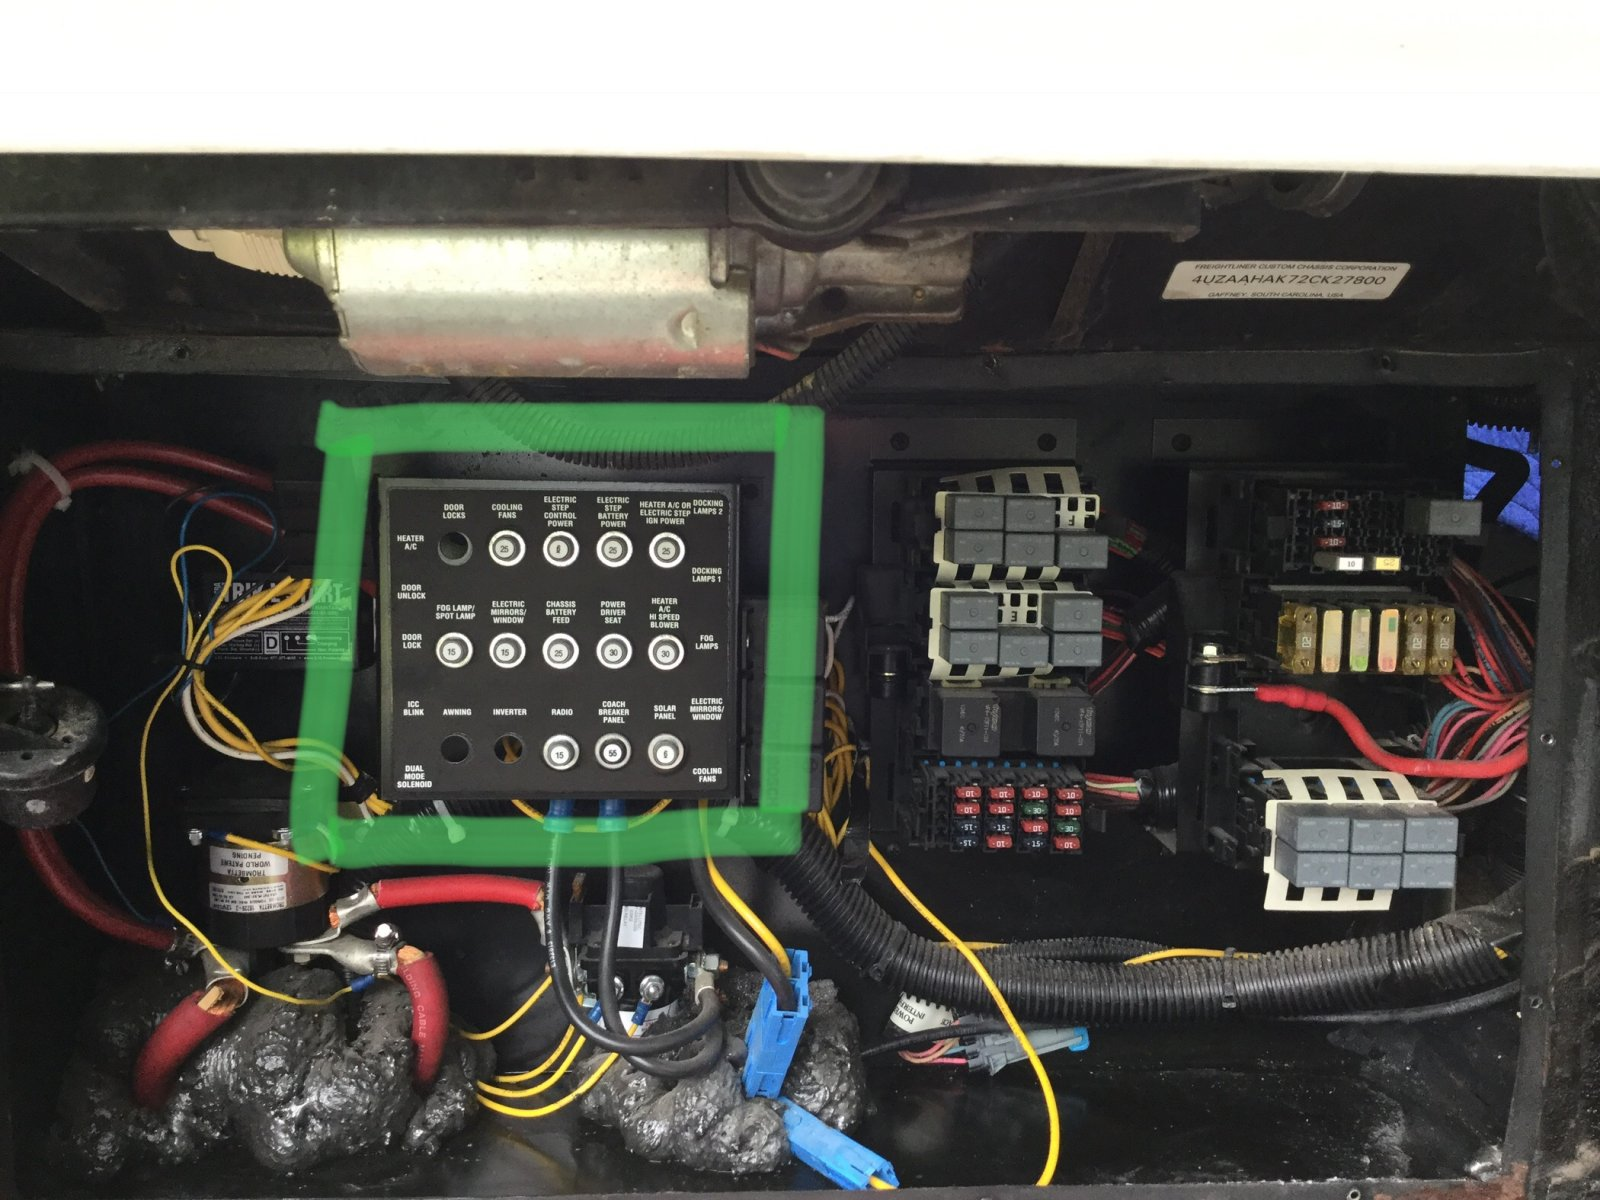 Where Is My Fuse Box 2001 Itasca Horizon 36ld Irv2 Forums Breaker Tripping Click Image For Larger Version Name 34257d9a 0fa4 44a7 882a 44b7458aabce